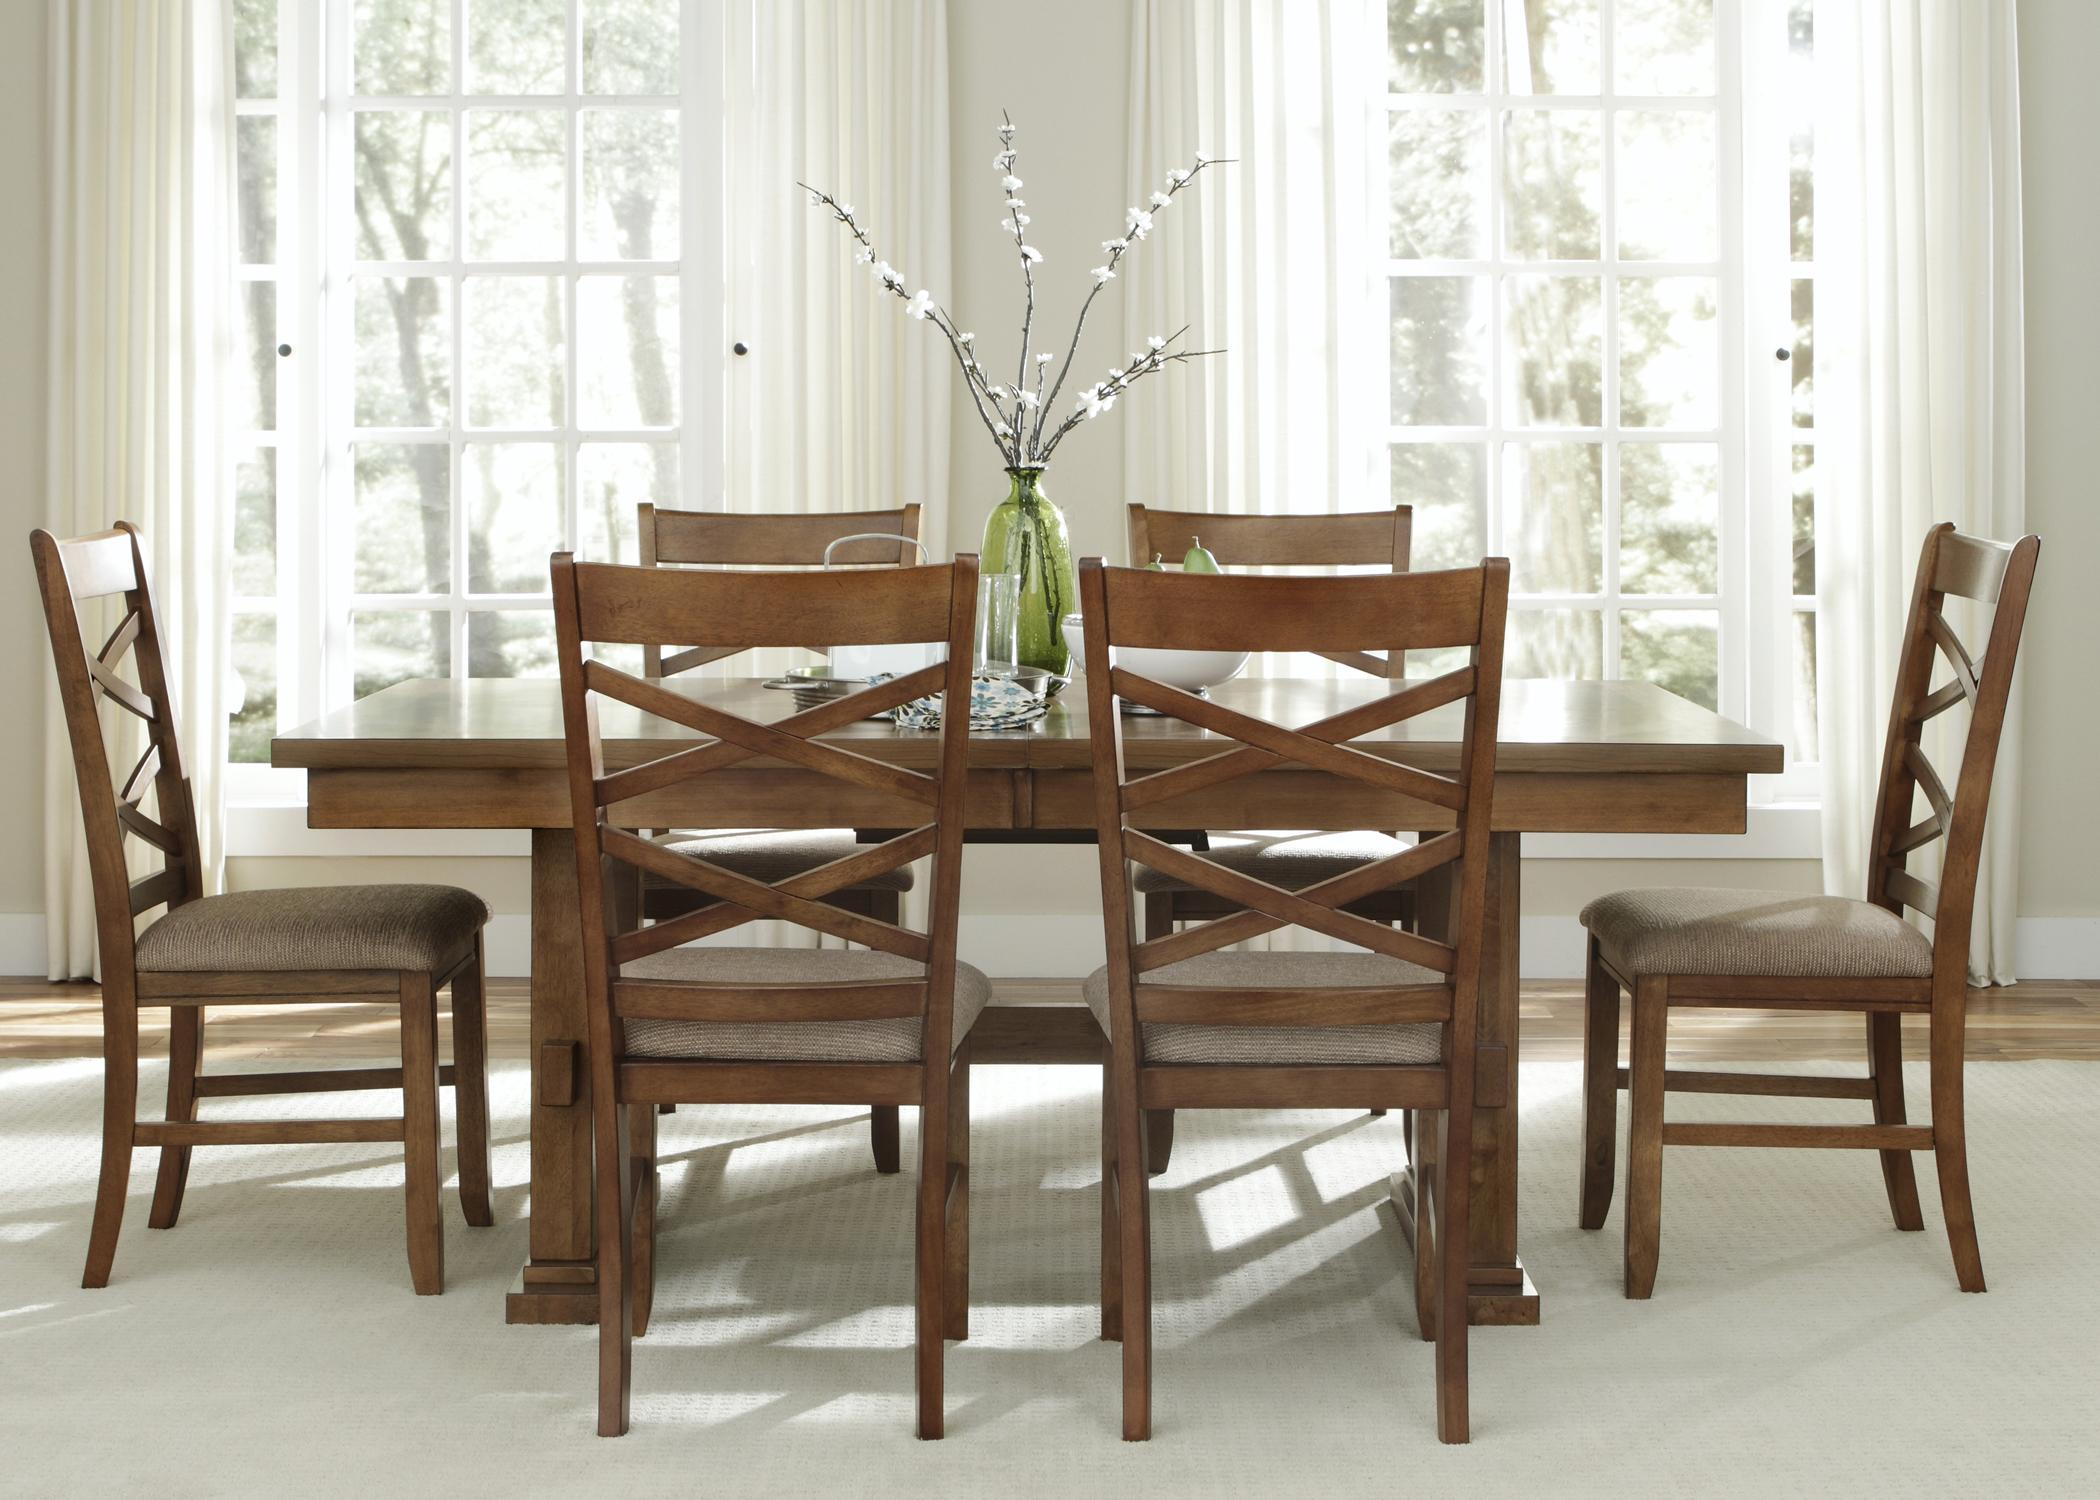 Liberty Furniture Bistro 7 Piece Trestle Table Set  - Item Number: 64-CD-SET36